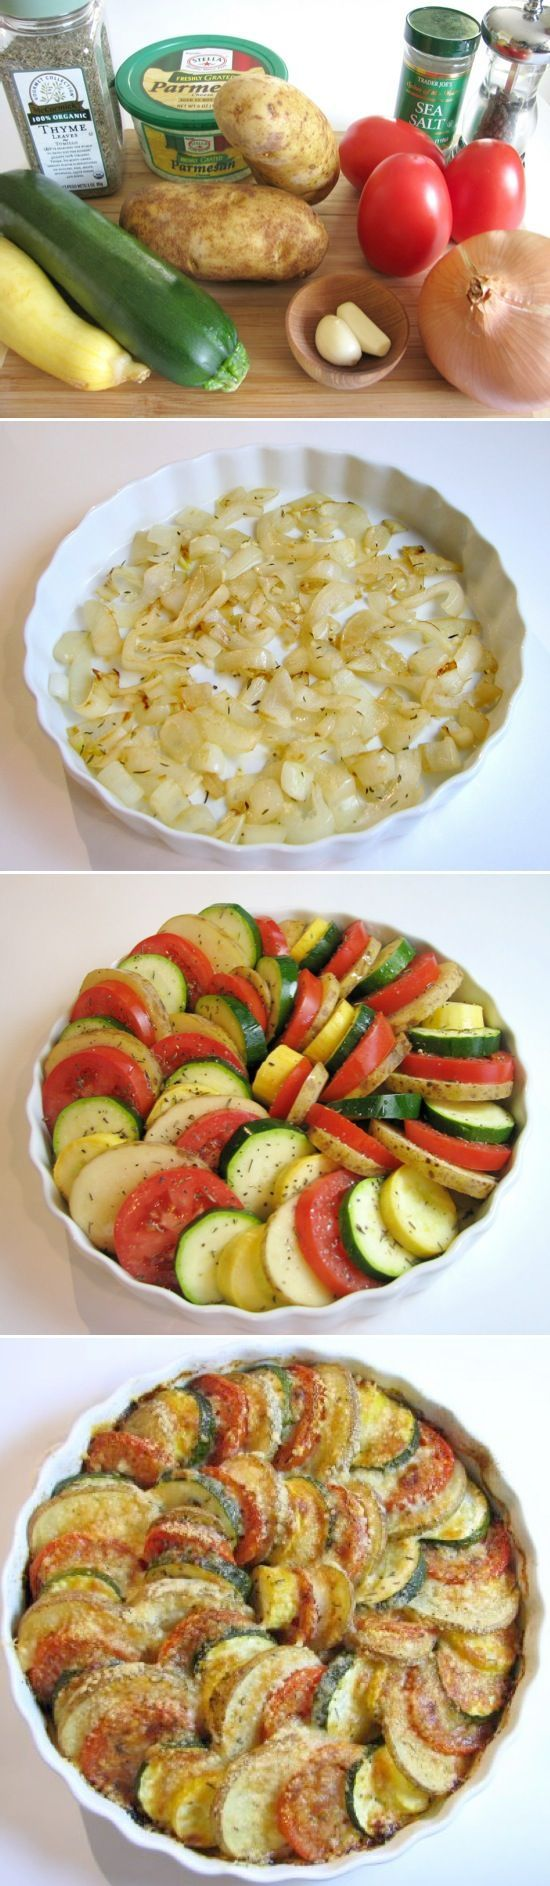 Parmesan Vegetable Spiral: a bed of onions is topped by a medley of veggies (tomatoes, potatoes, squash and zucchini) then drizzled w EVOO, sprinkled w Parmesan cheese and roasted to perfection. Gorgeous new way to eat your veggies! #recipes #veggies #zucchini #potatoes